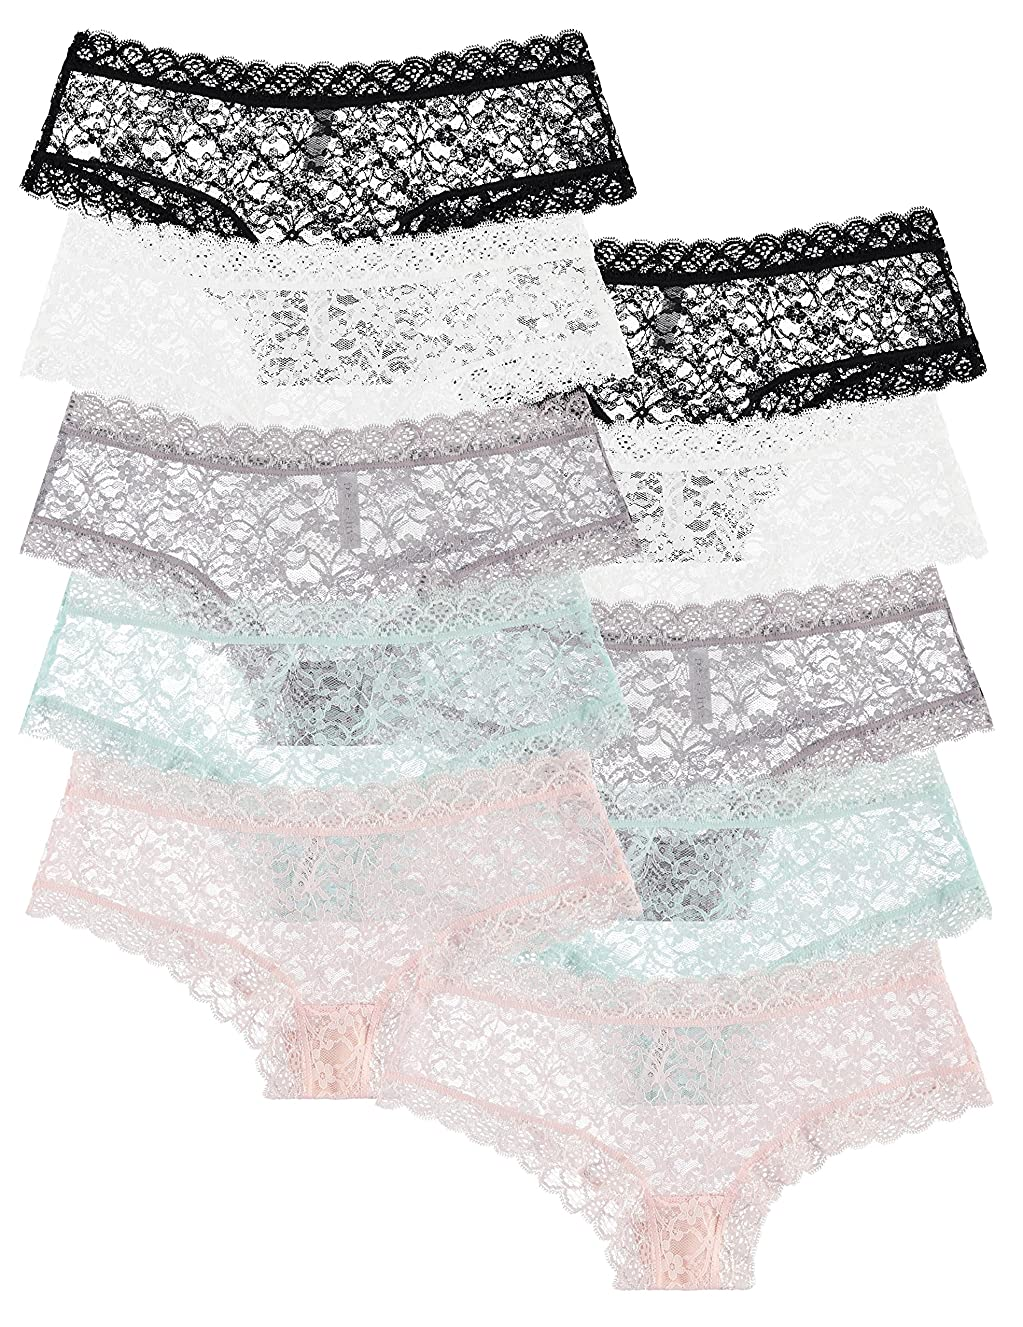 Free to Live 10 Pack Women's Lace Panties - Trimmed Boyshorts Underwear